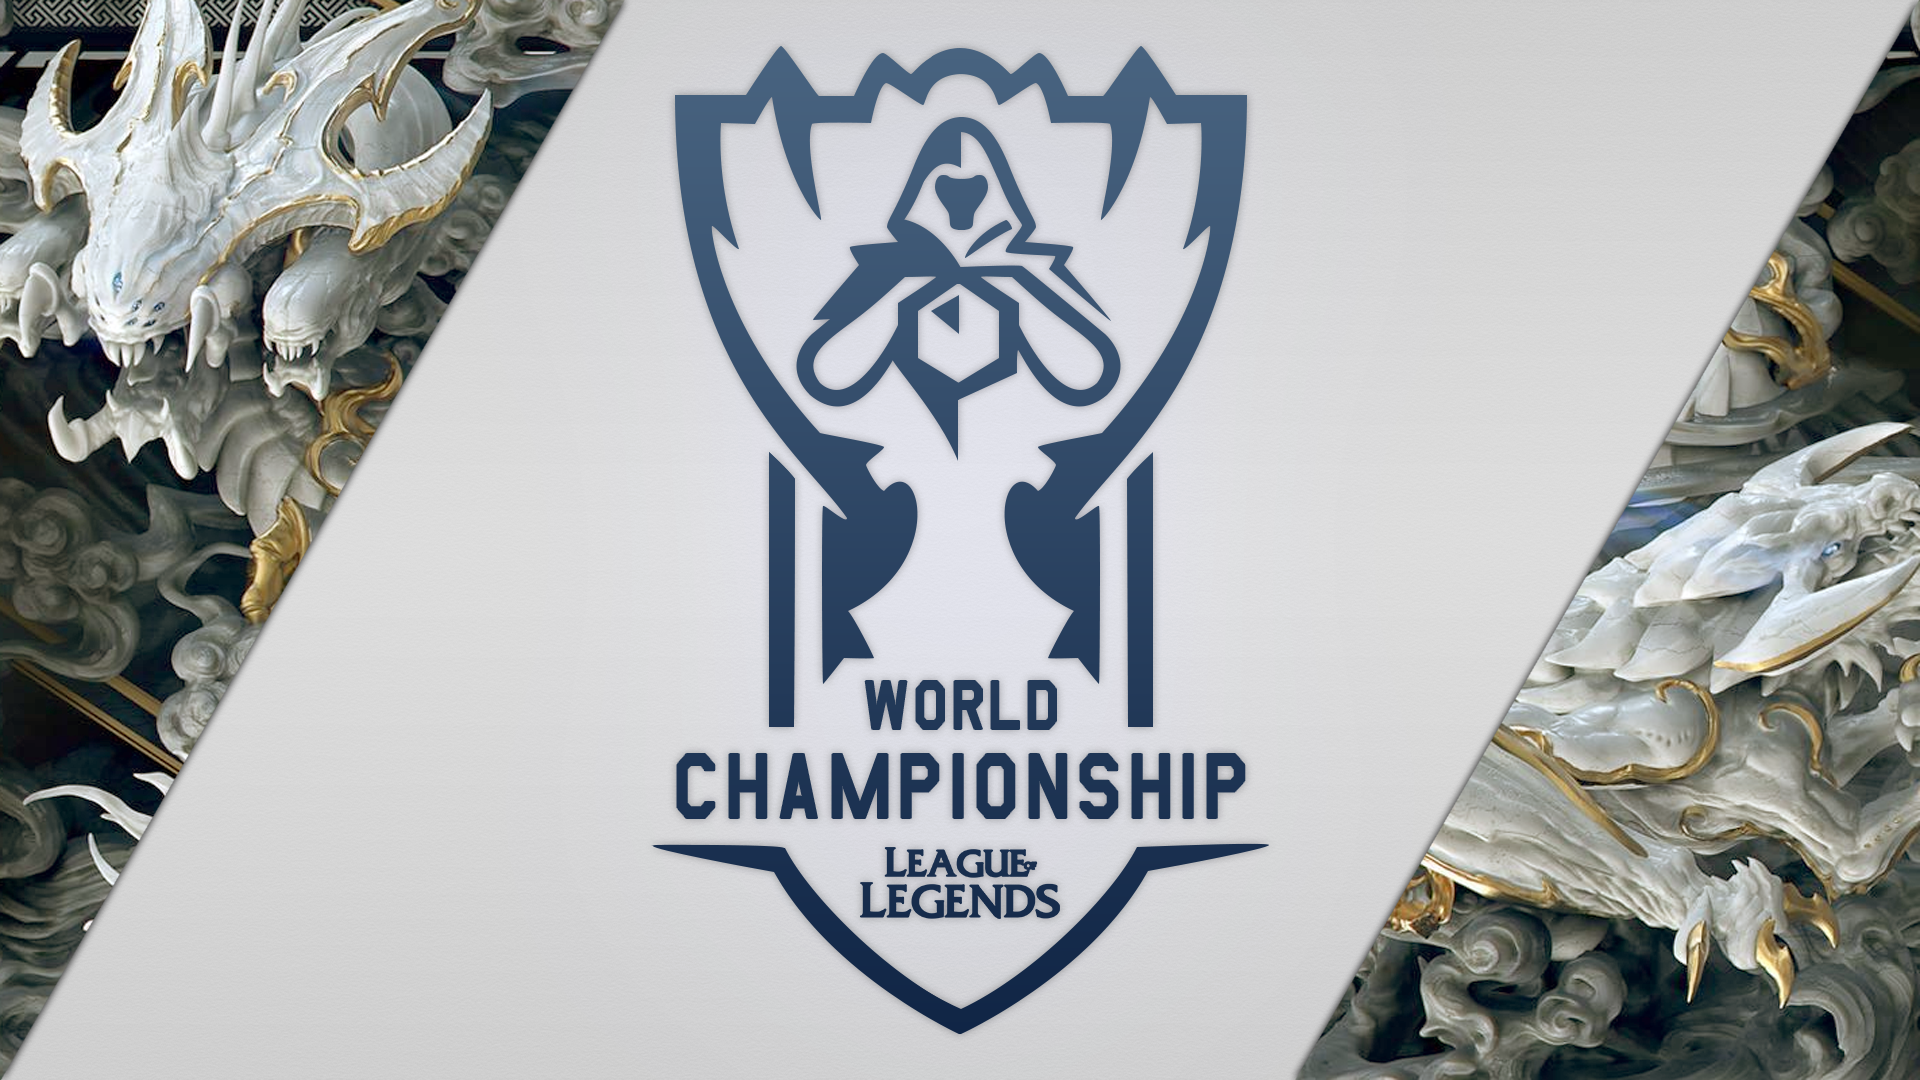 League Of Legends World Championship 2017 Gold By Ruanes97 On